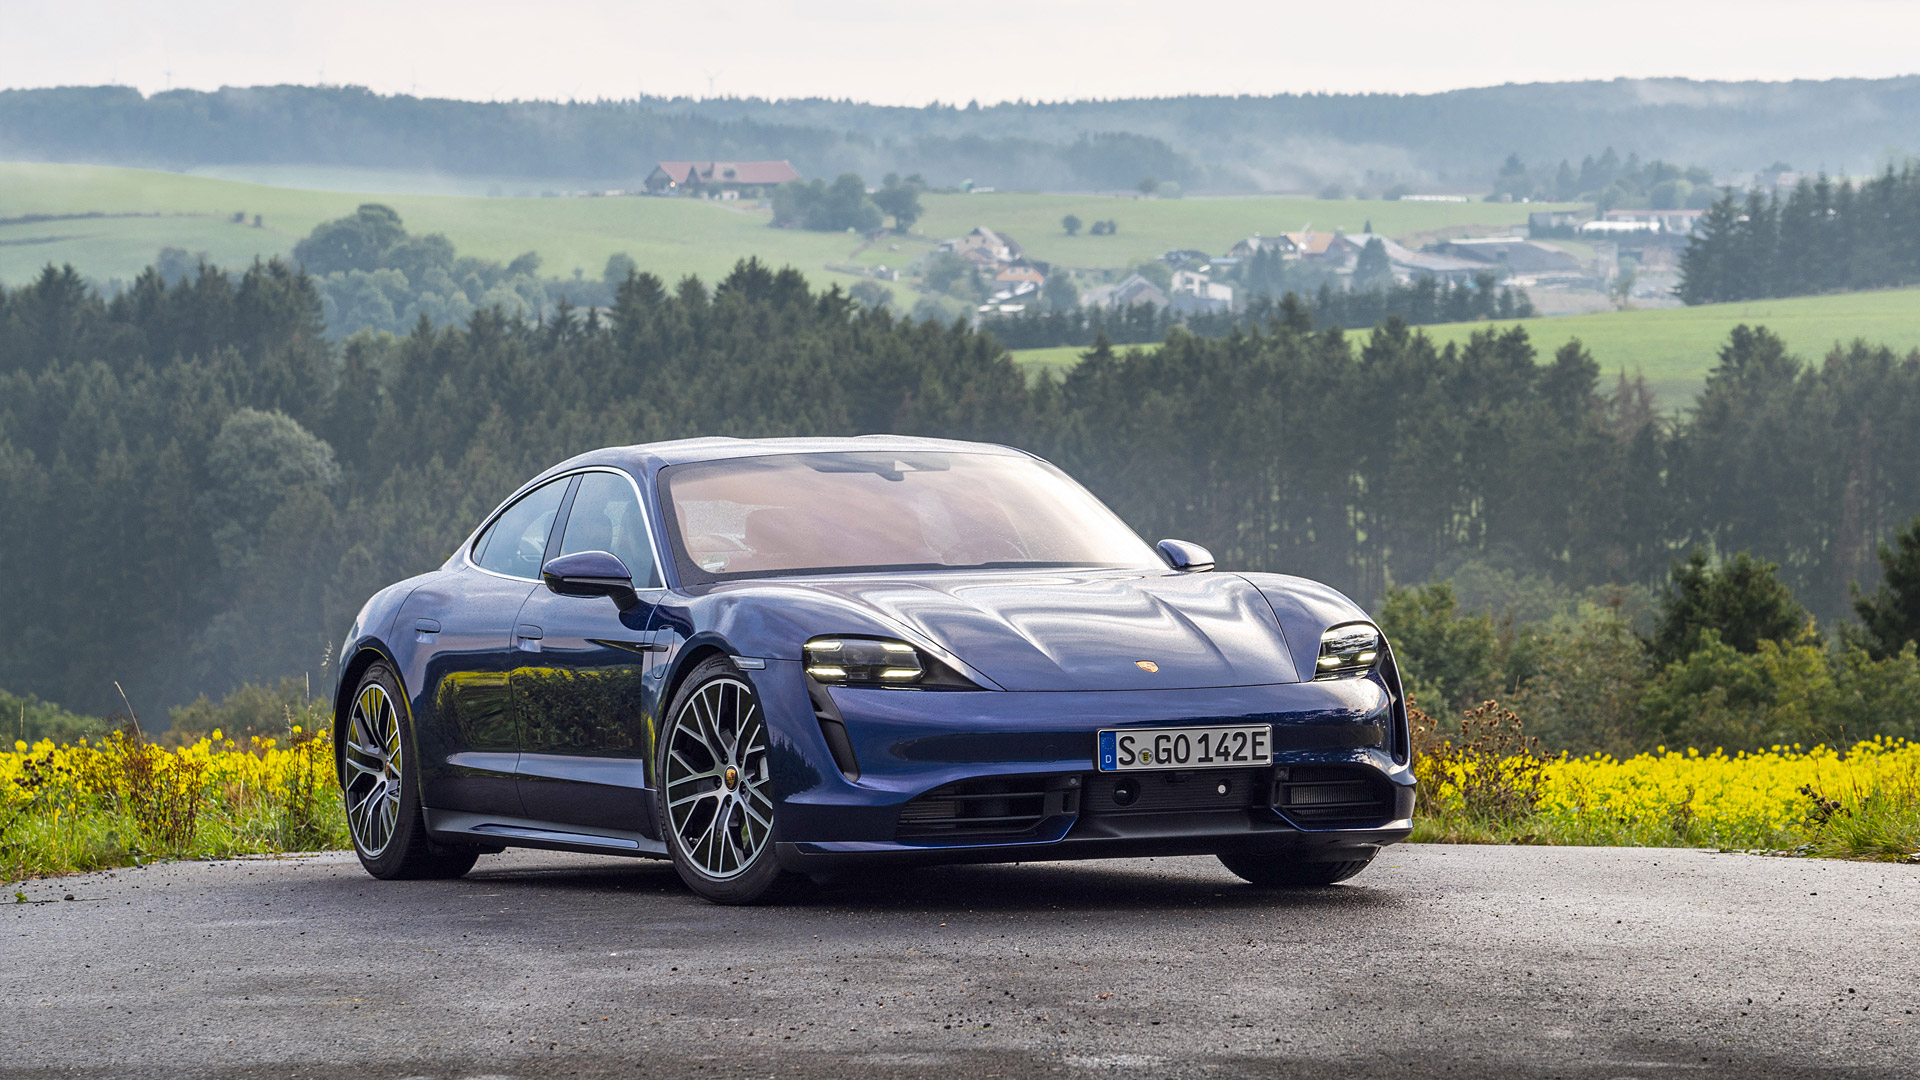 Download 2020 Porsche Taycan Wallpapers   WSupercars 1920x1080